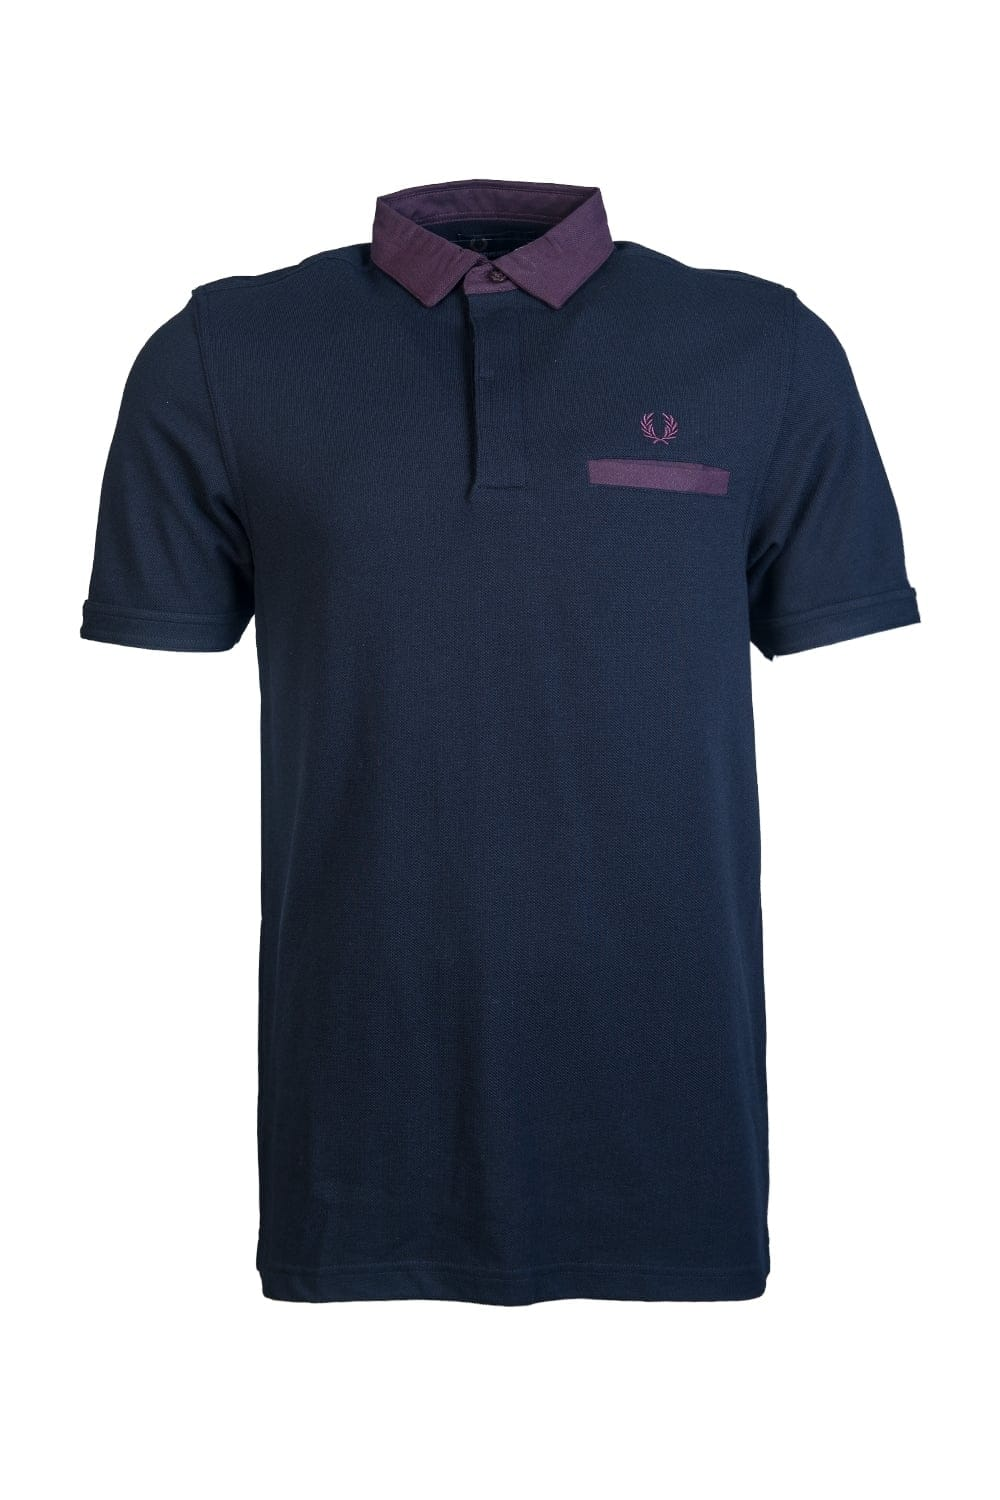 fred perry polo t shirt m9555 608 fred perry from sage. Black Bedroom Furniture Sets. Home Design Ideas